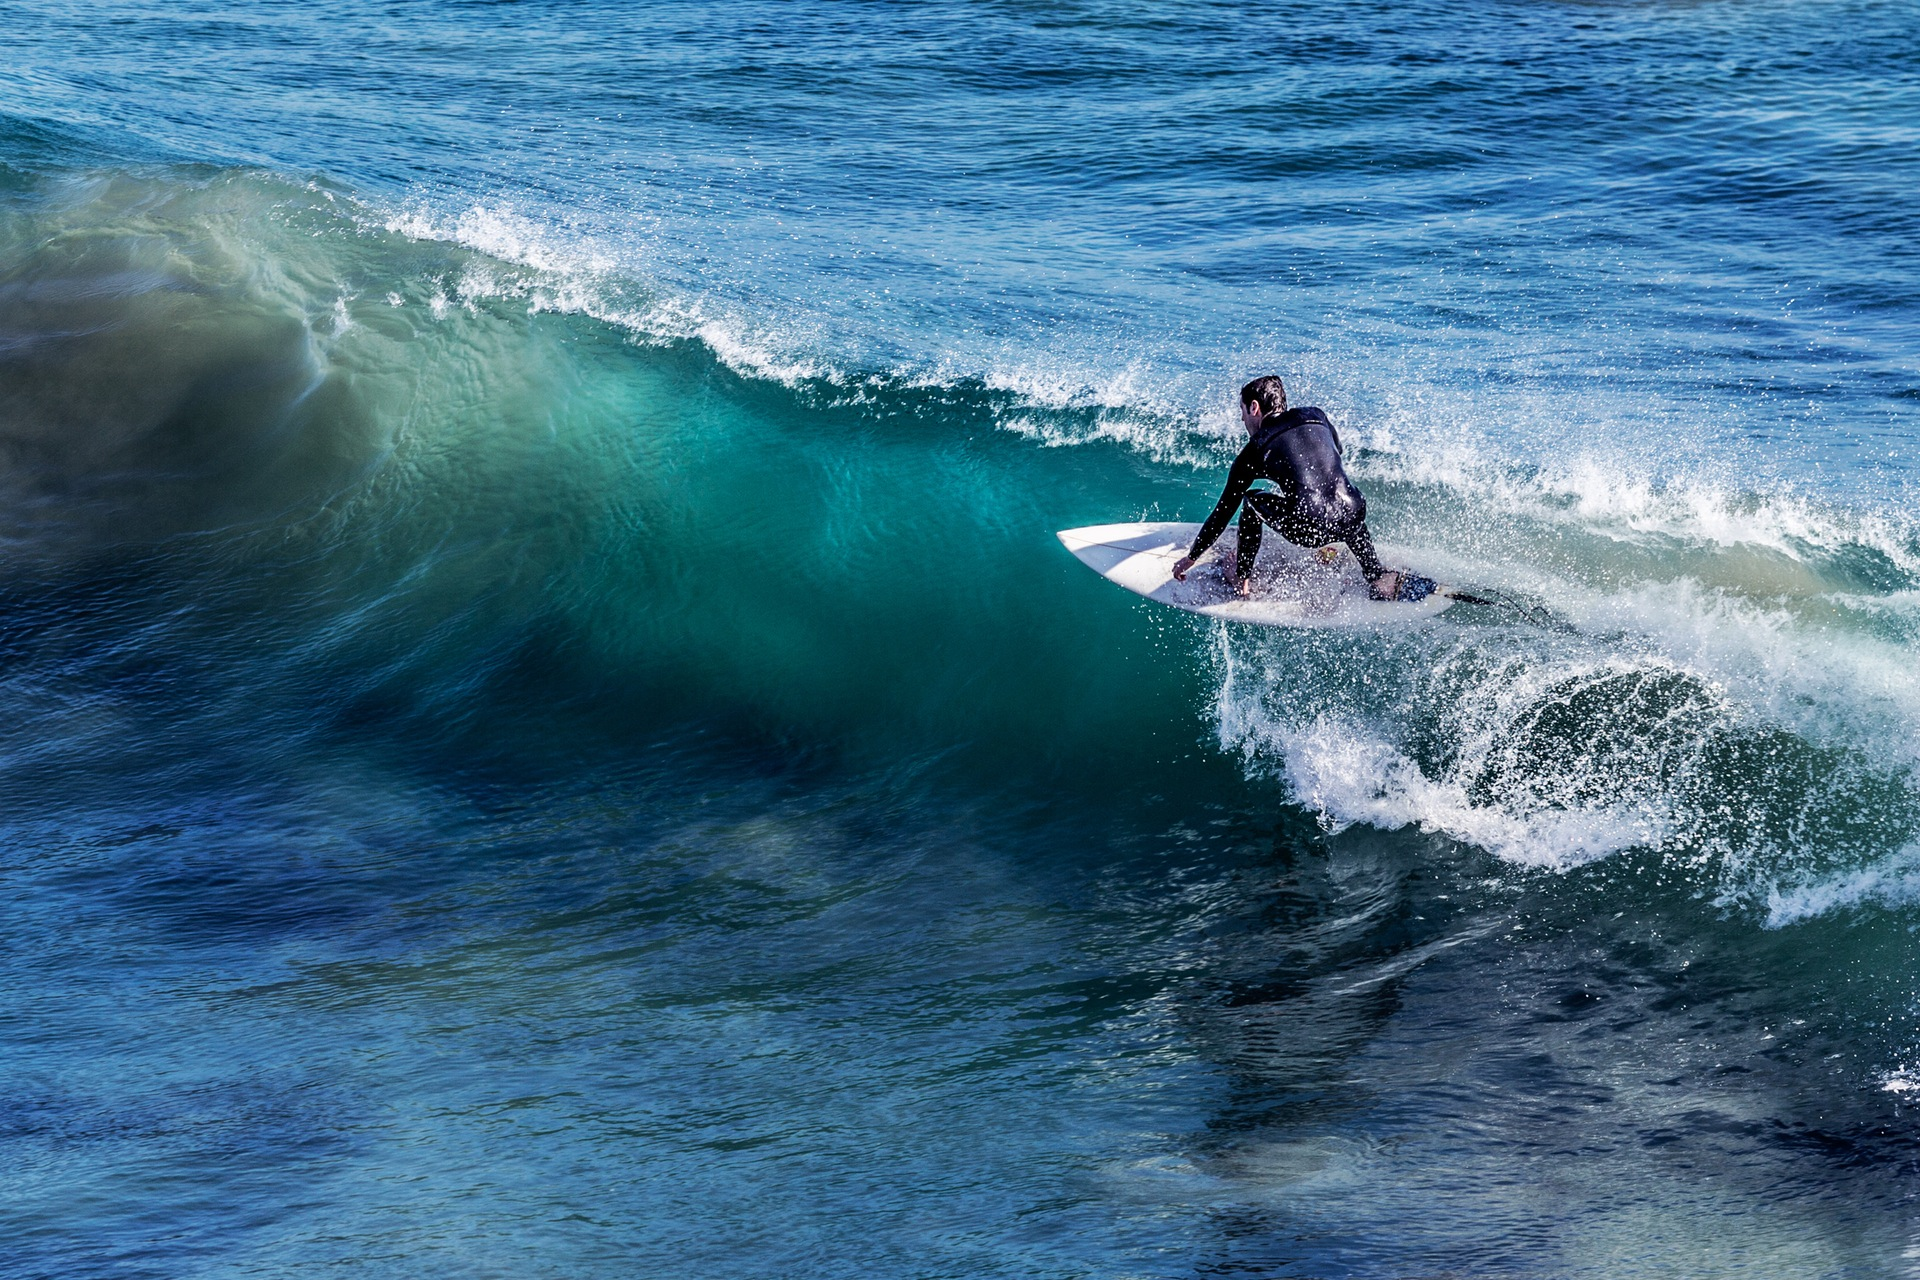 The Surfing Man Will Blow Your Mind